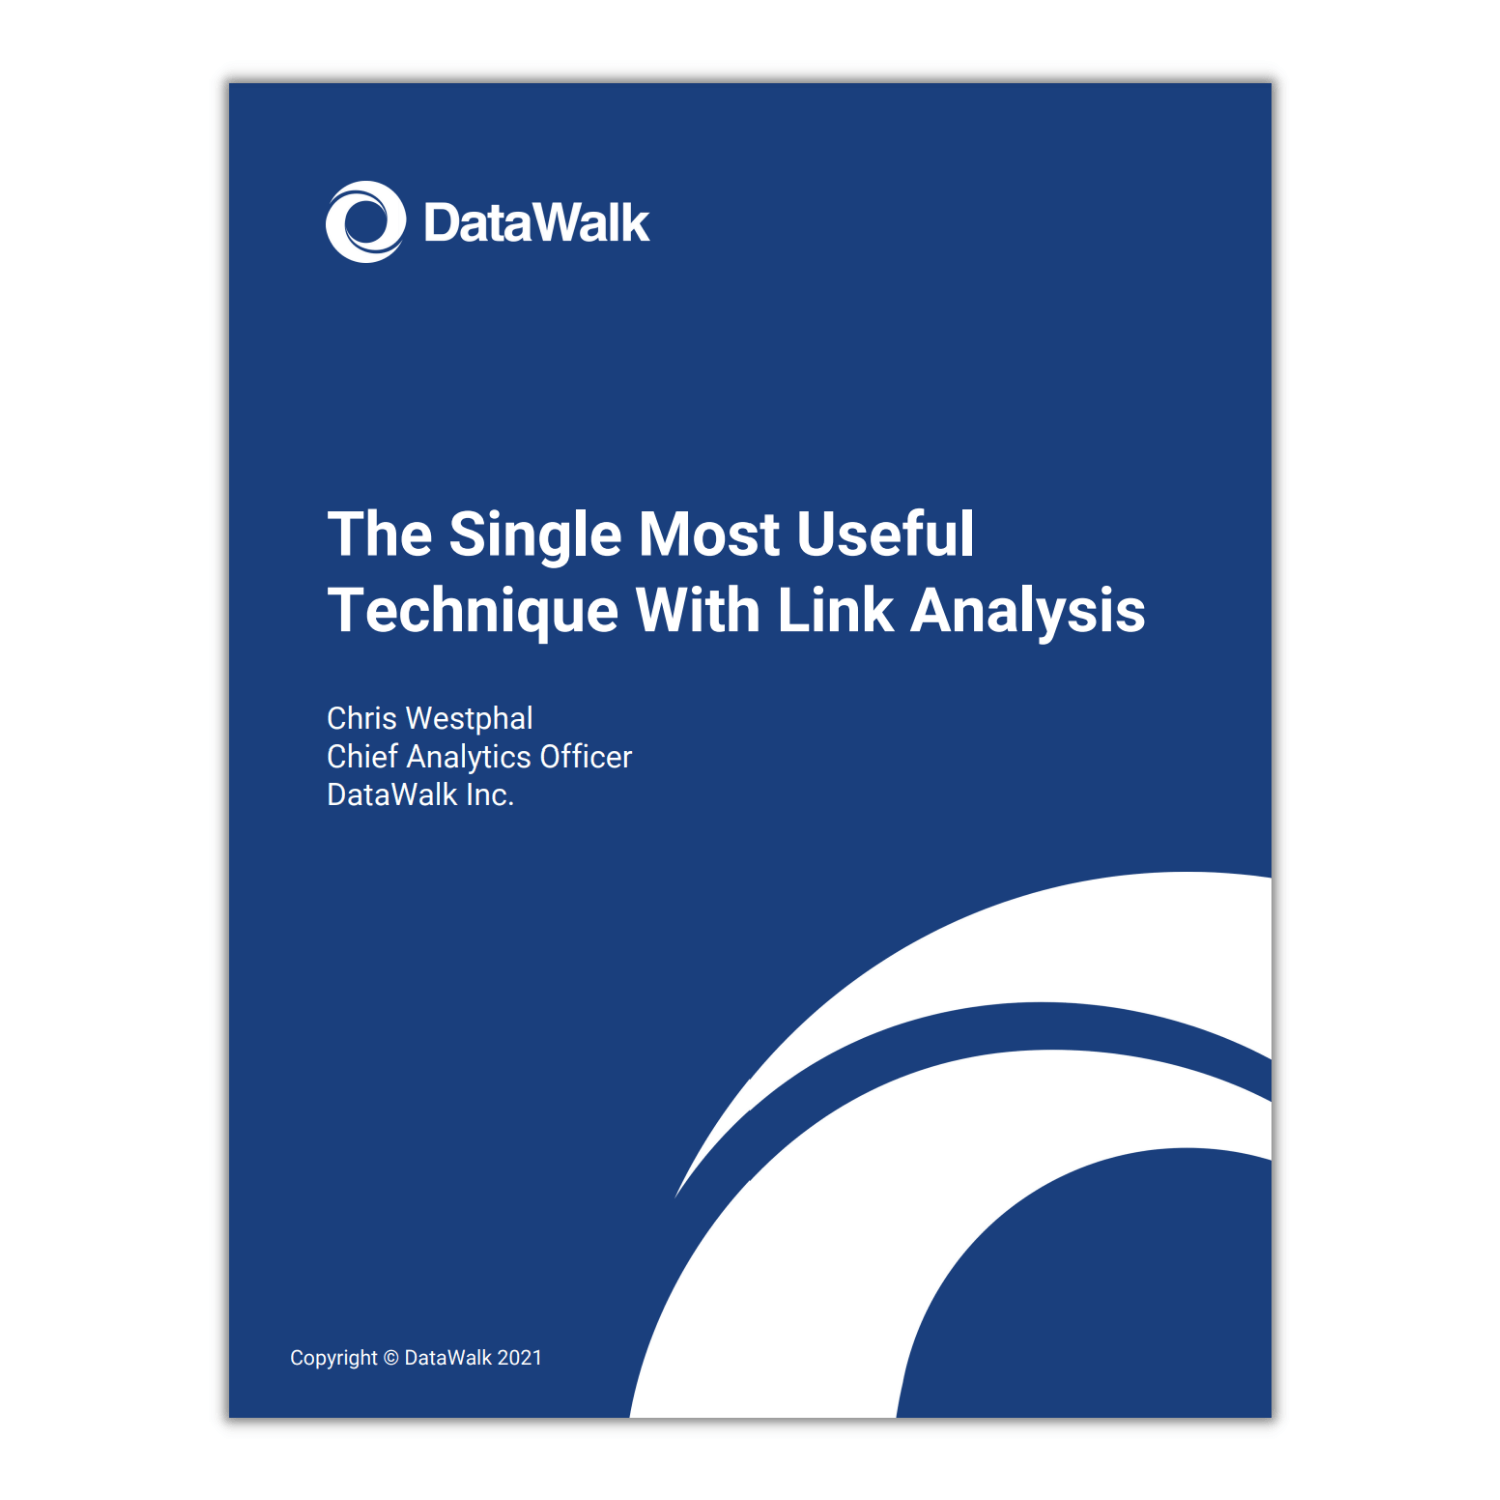 The Single Most Useful Link Analysis Technique